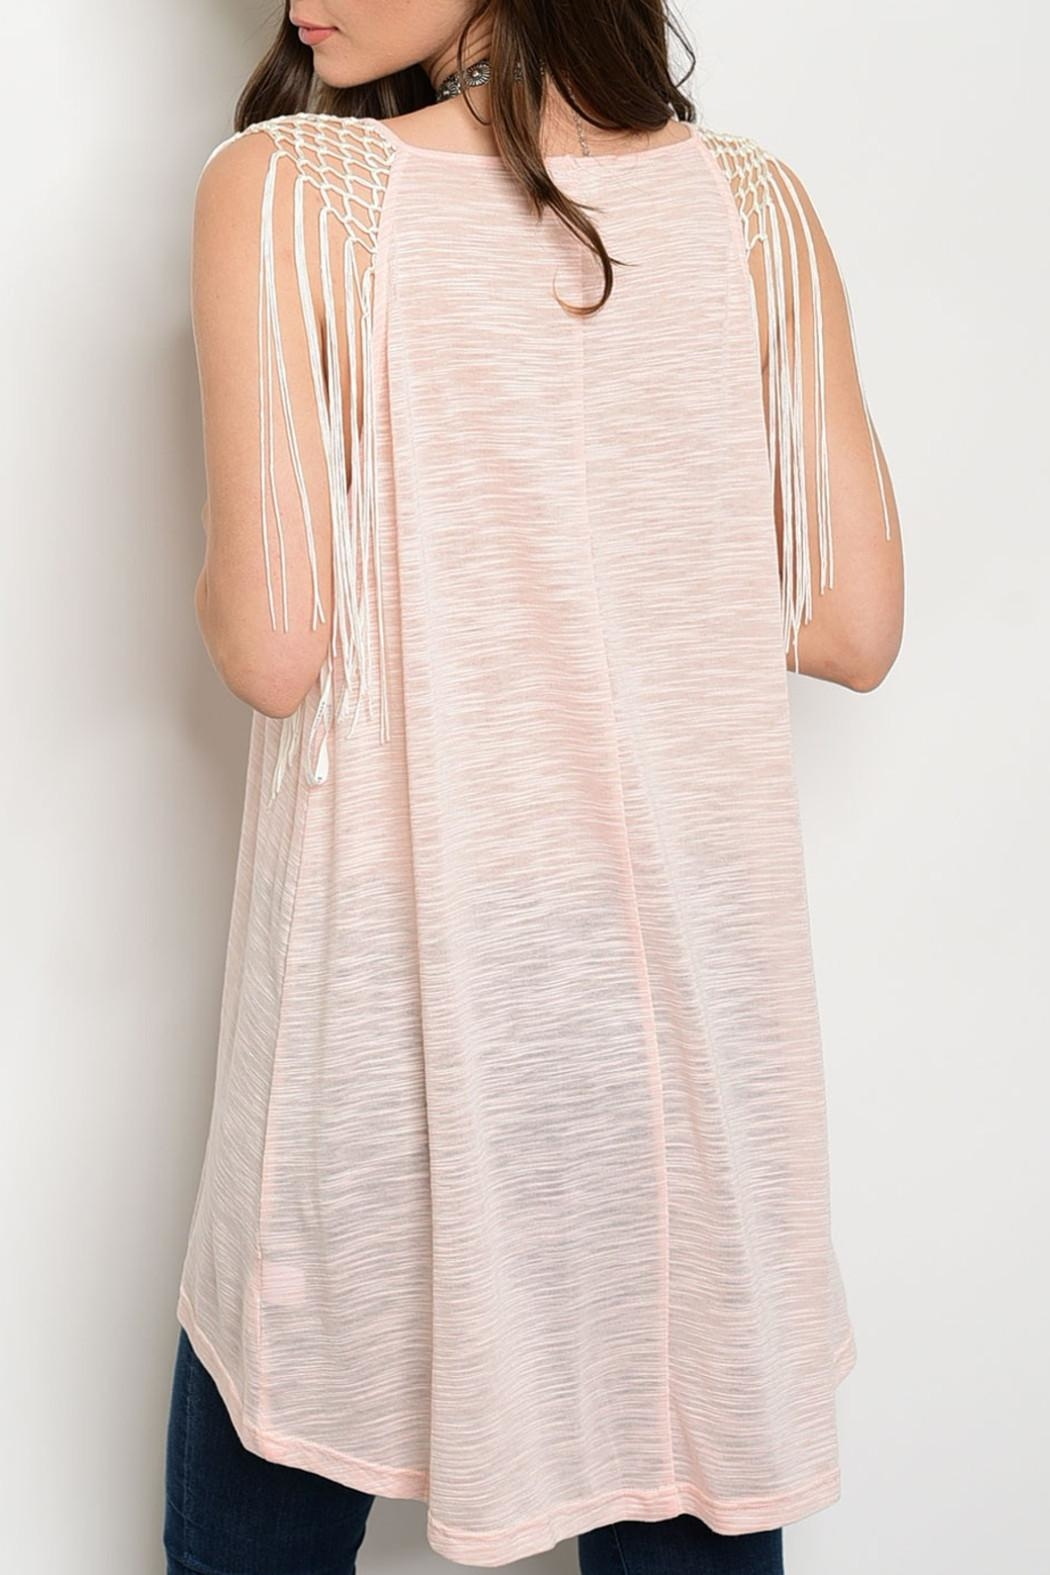 Soieblu Pink Tunic Top - Front Full Image